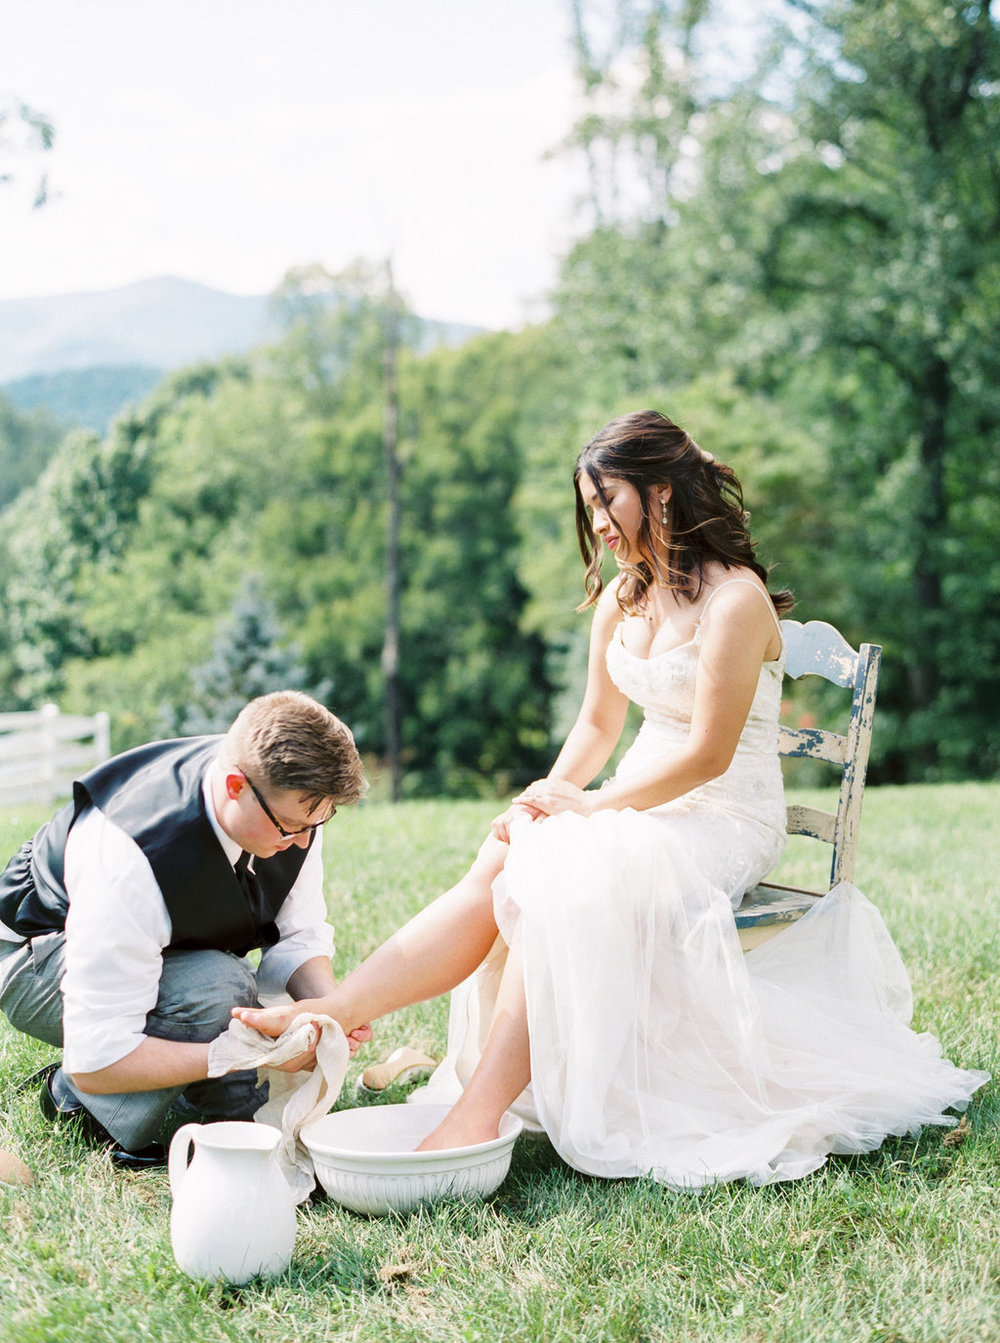 Bride and Groom foot washing